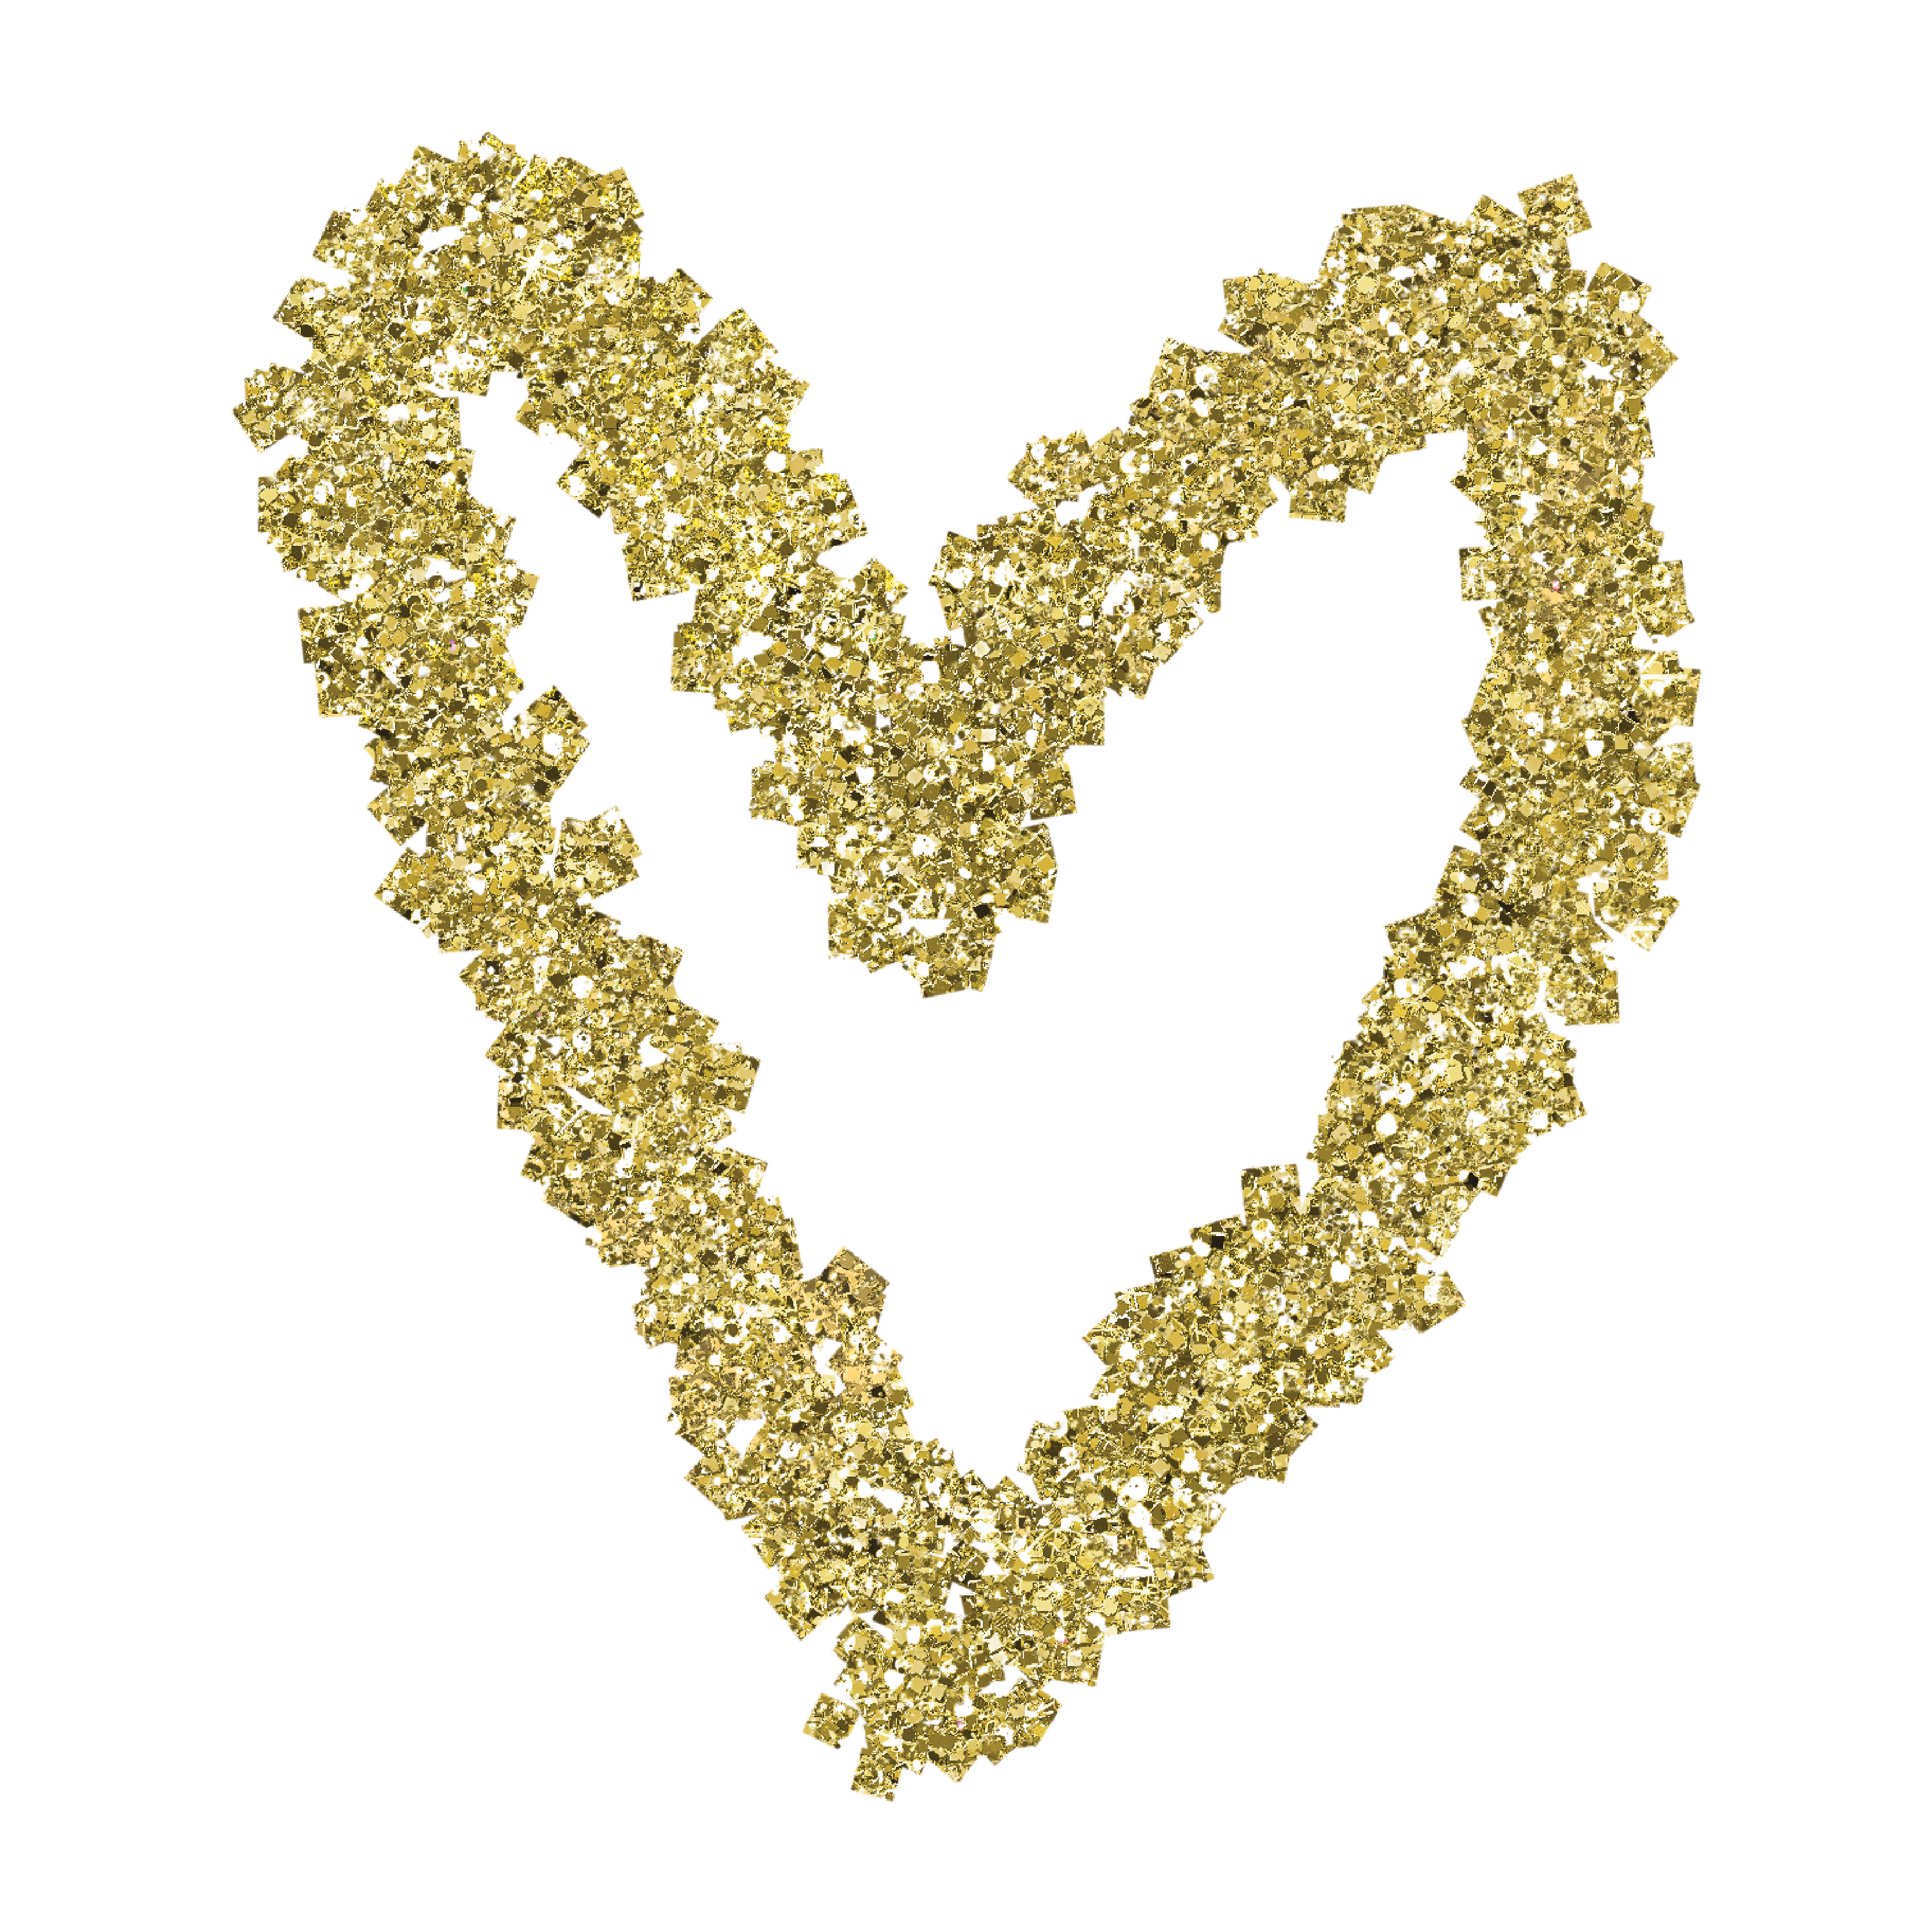 Glittery gold heart clipart svg black and white download Gold Glitter Heart Web Flair Graphic svg black and white download